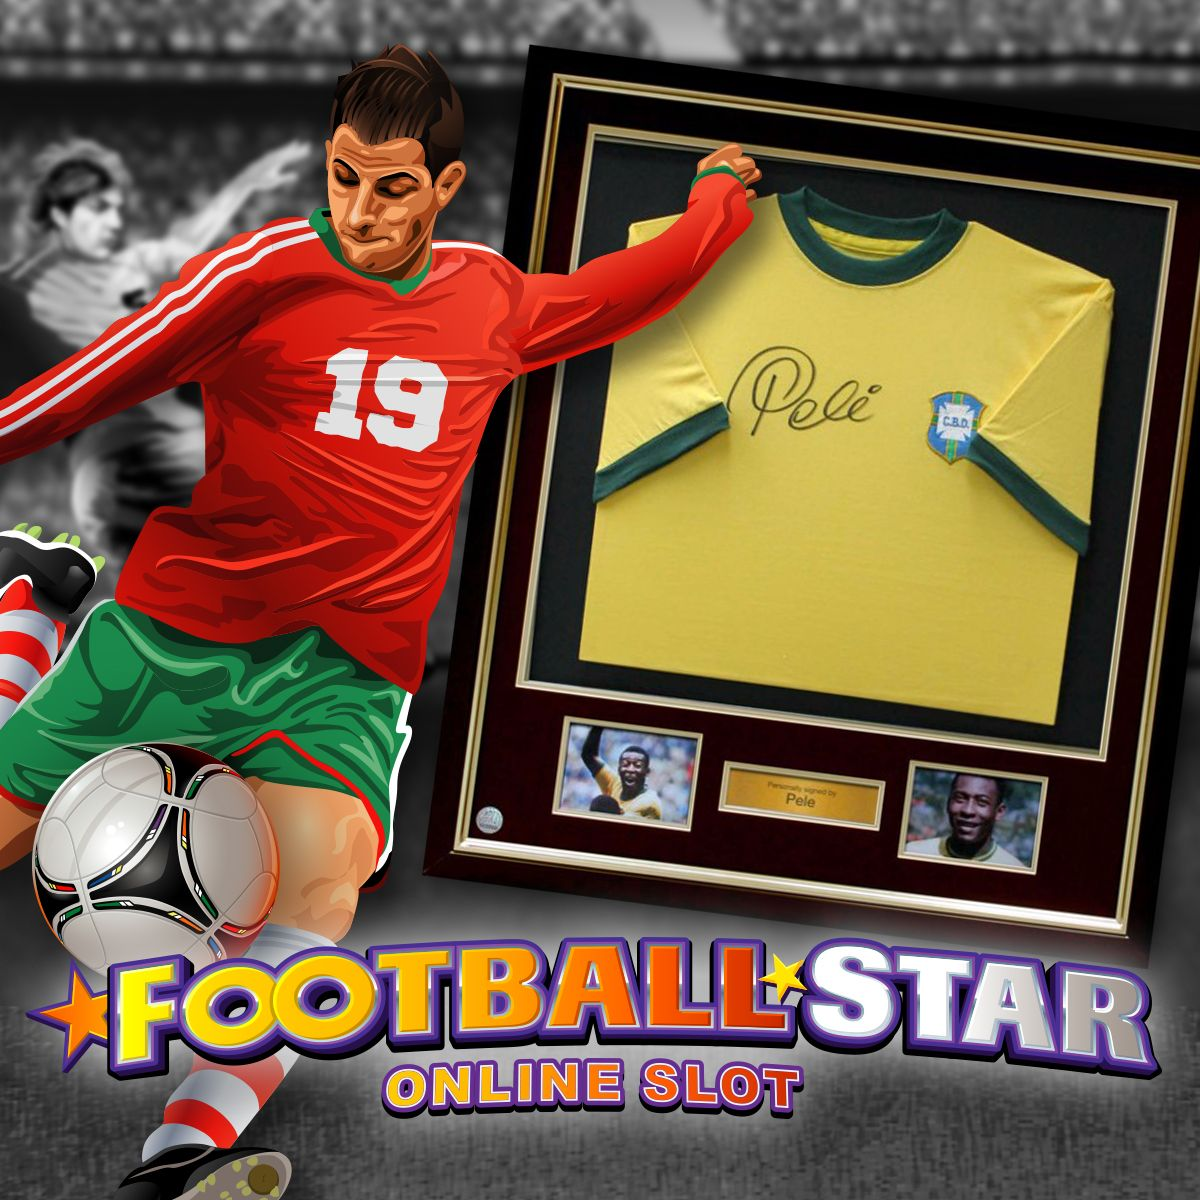 Shoot and score yourself wins on the Football Star online